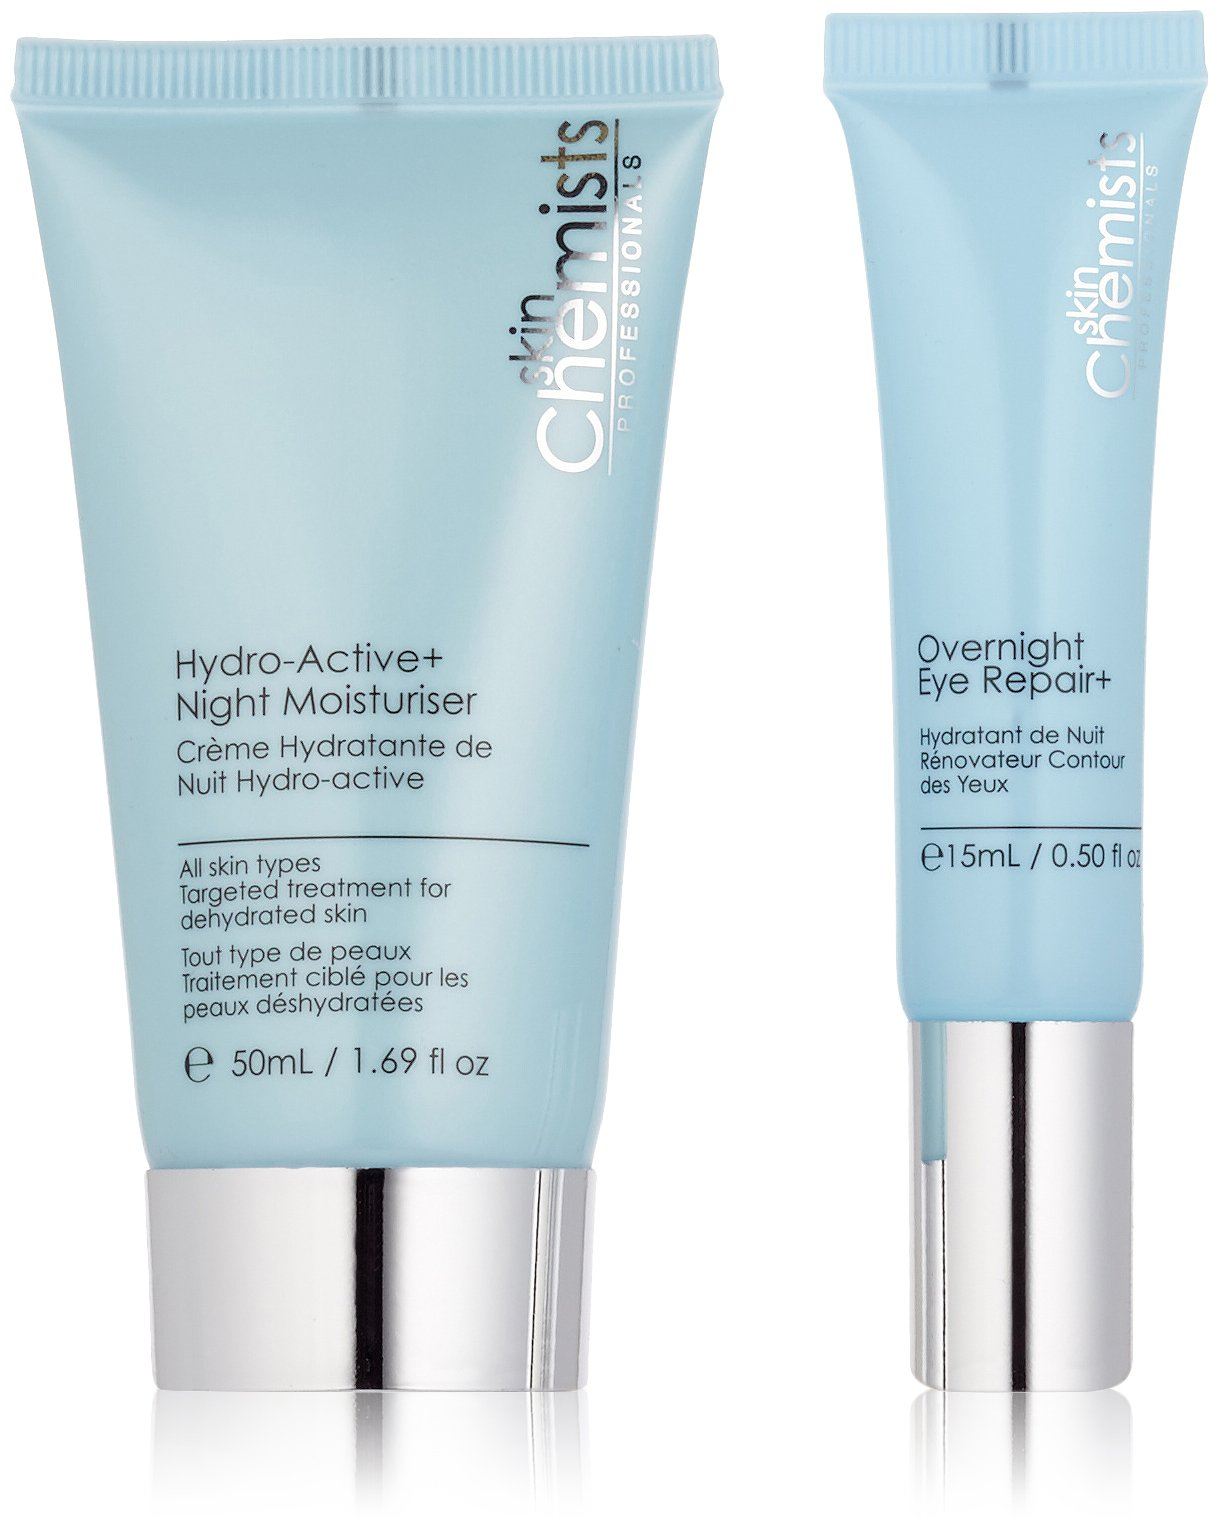 skinchemists Advanced Overnight Eye Repair and Hydro-Active Night Moisturiser, 40 Gram